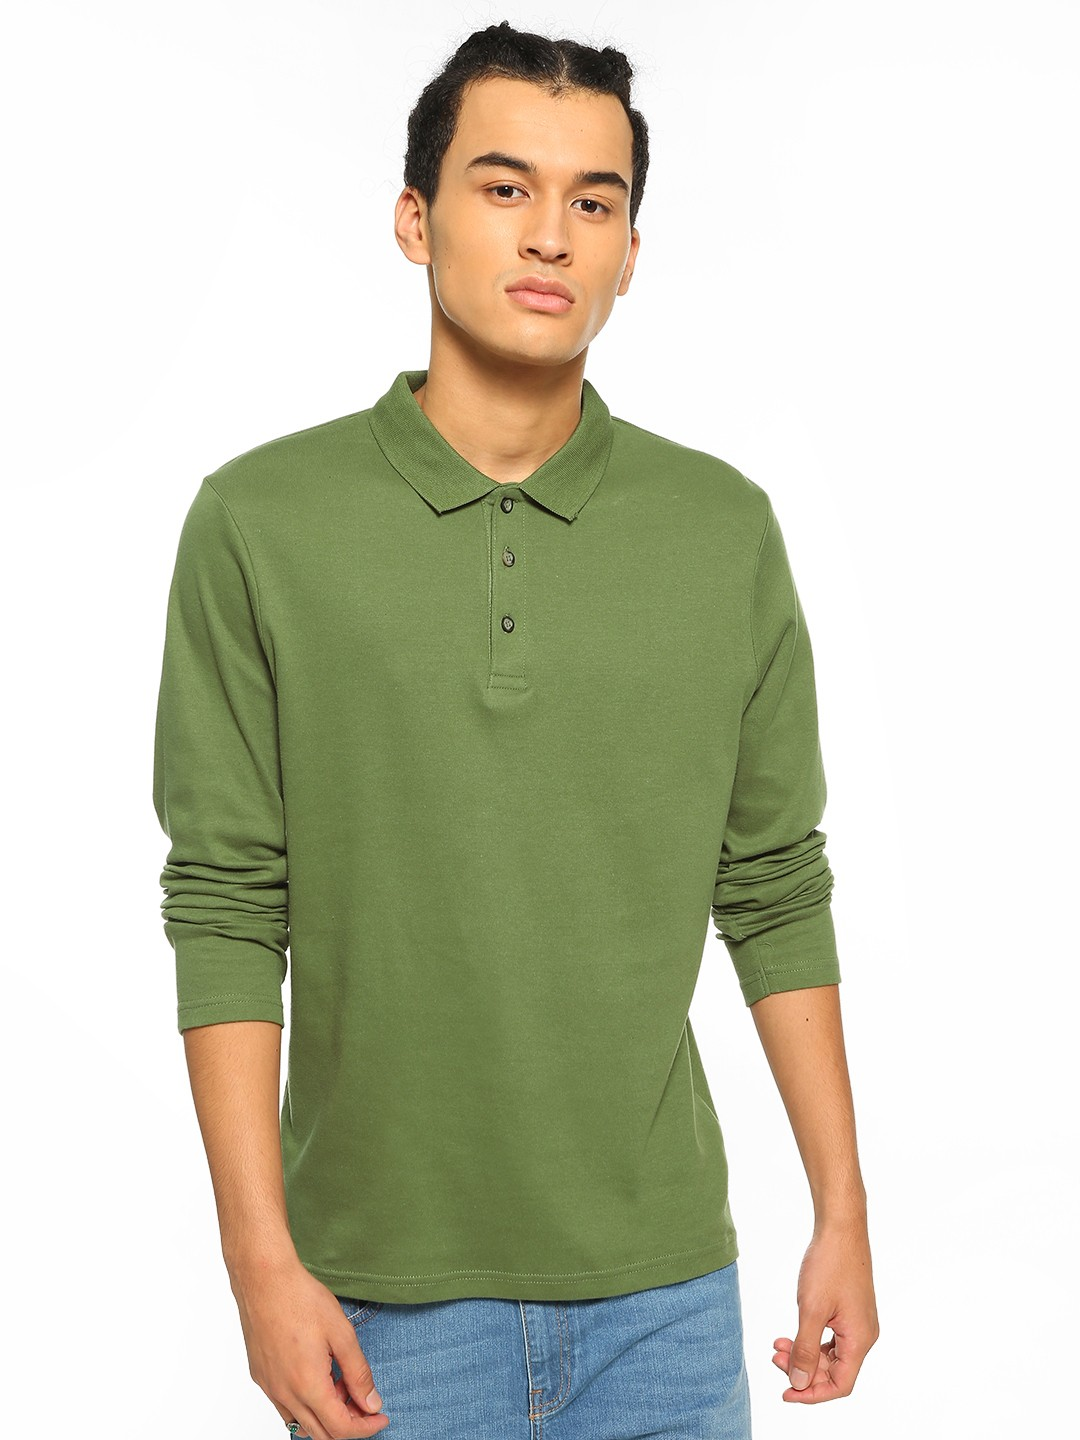 Blue Saint Green Basic Long Sleeve Polo Shirt 1